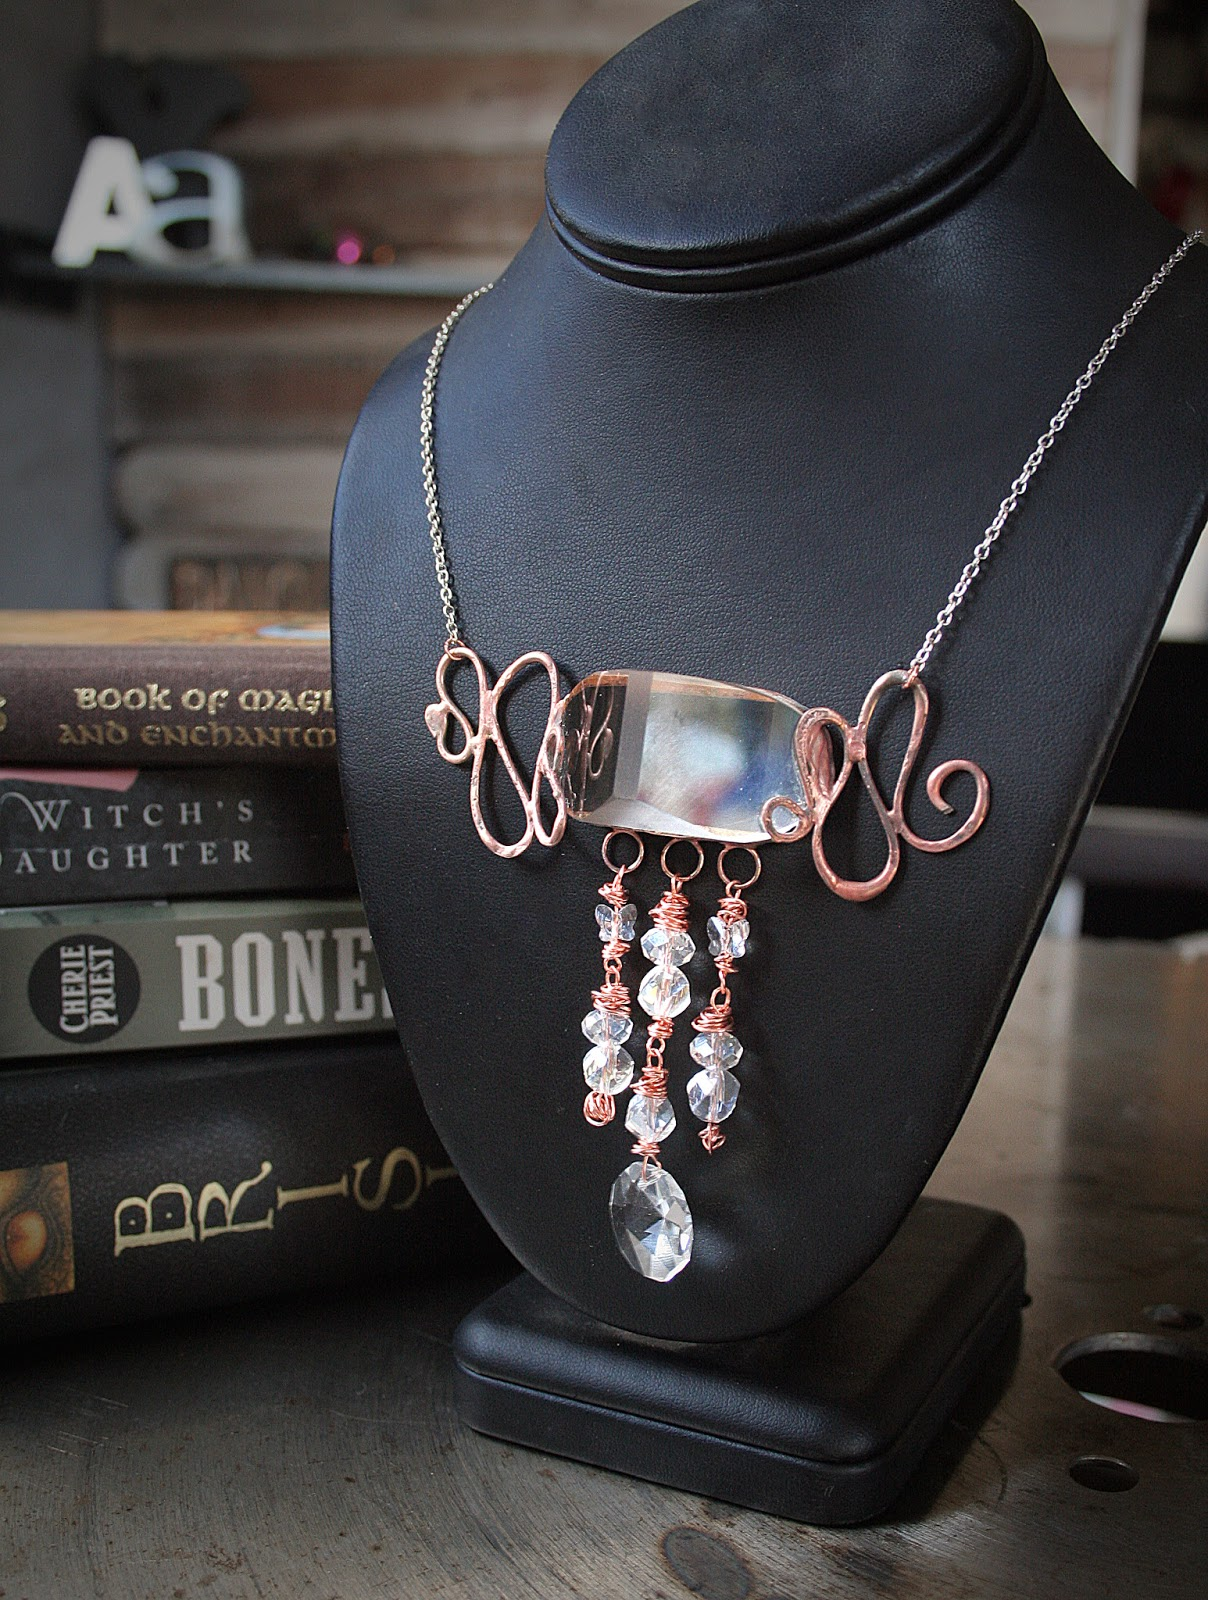 Refinerii studios new soldered copper crystal jewelry for How to solder copper jewelry